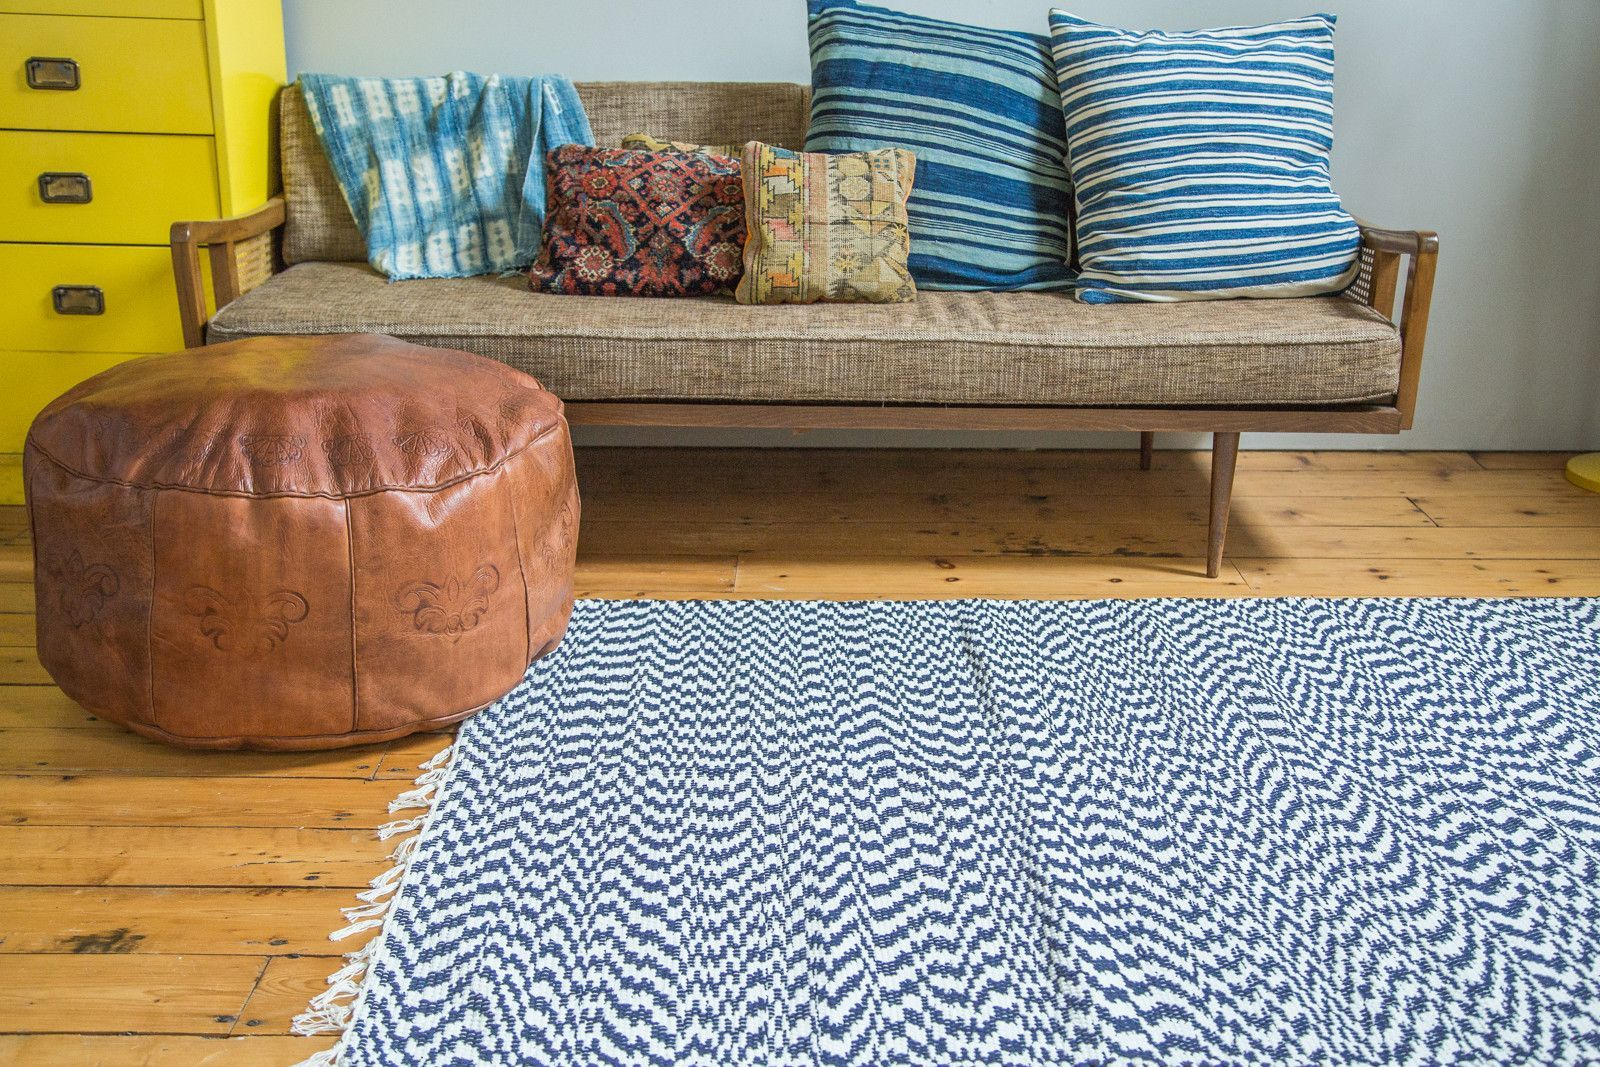 4x6 New Organic Cotton Navy And White Rag Rug Rugs In Living